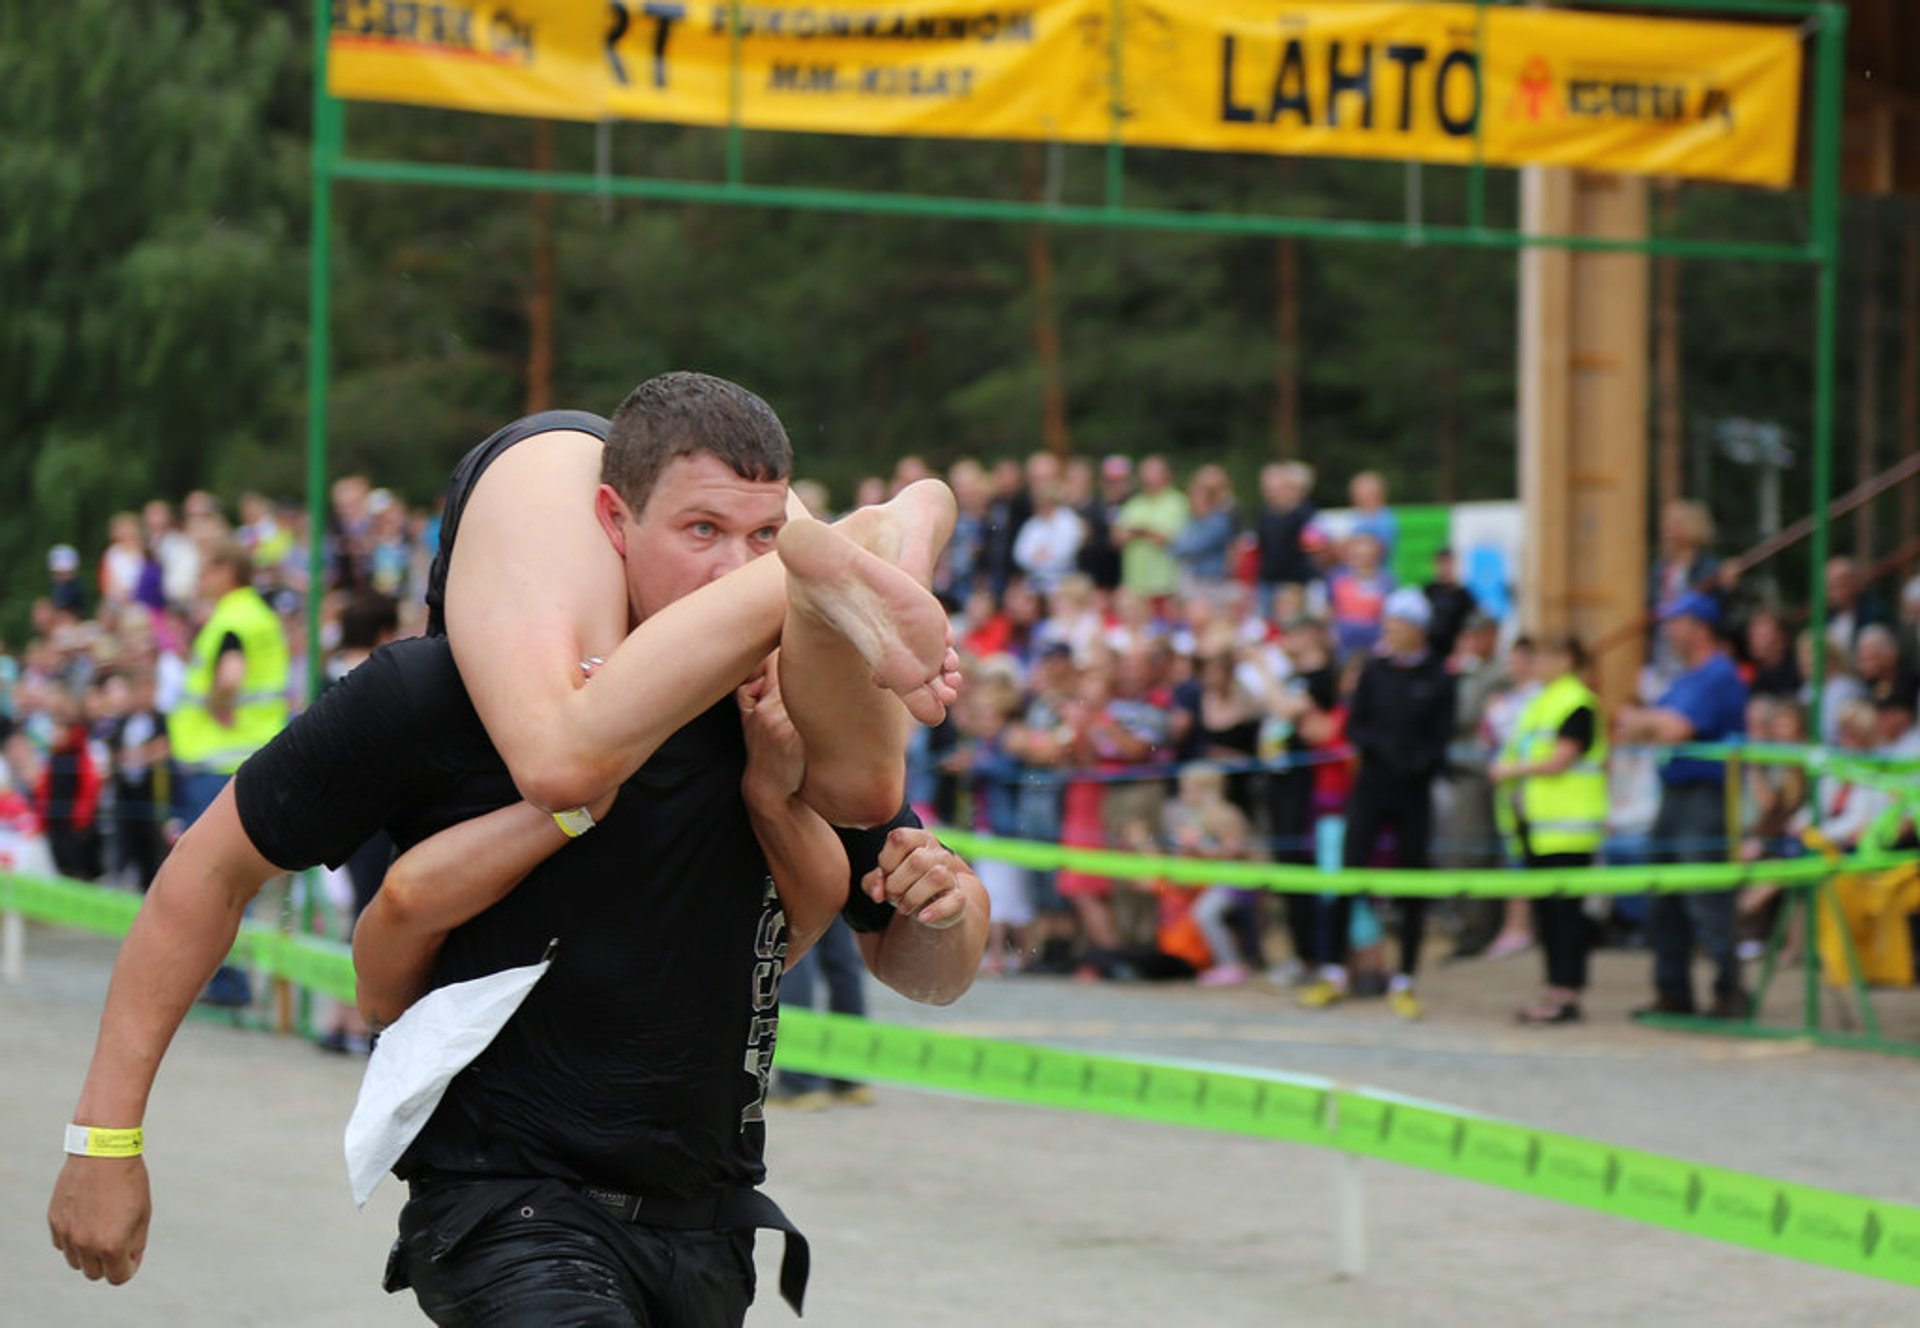 Wife Carrying World Championships in Finland - Best Season 2020